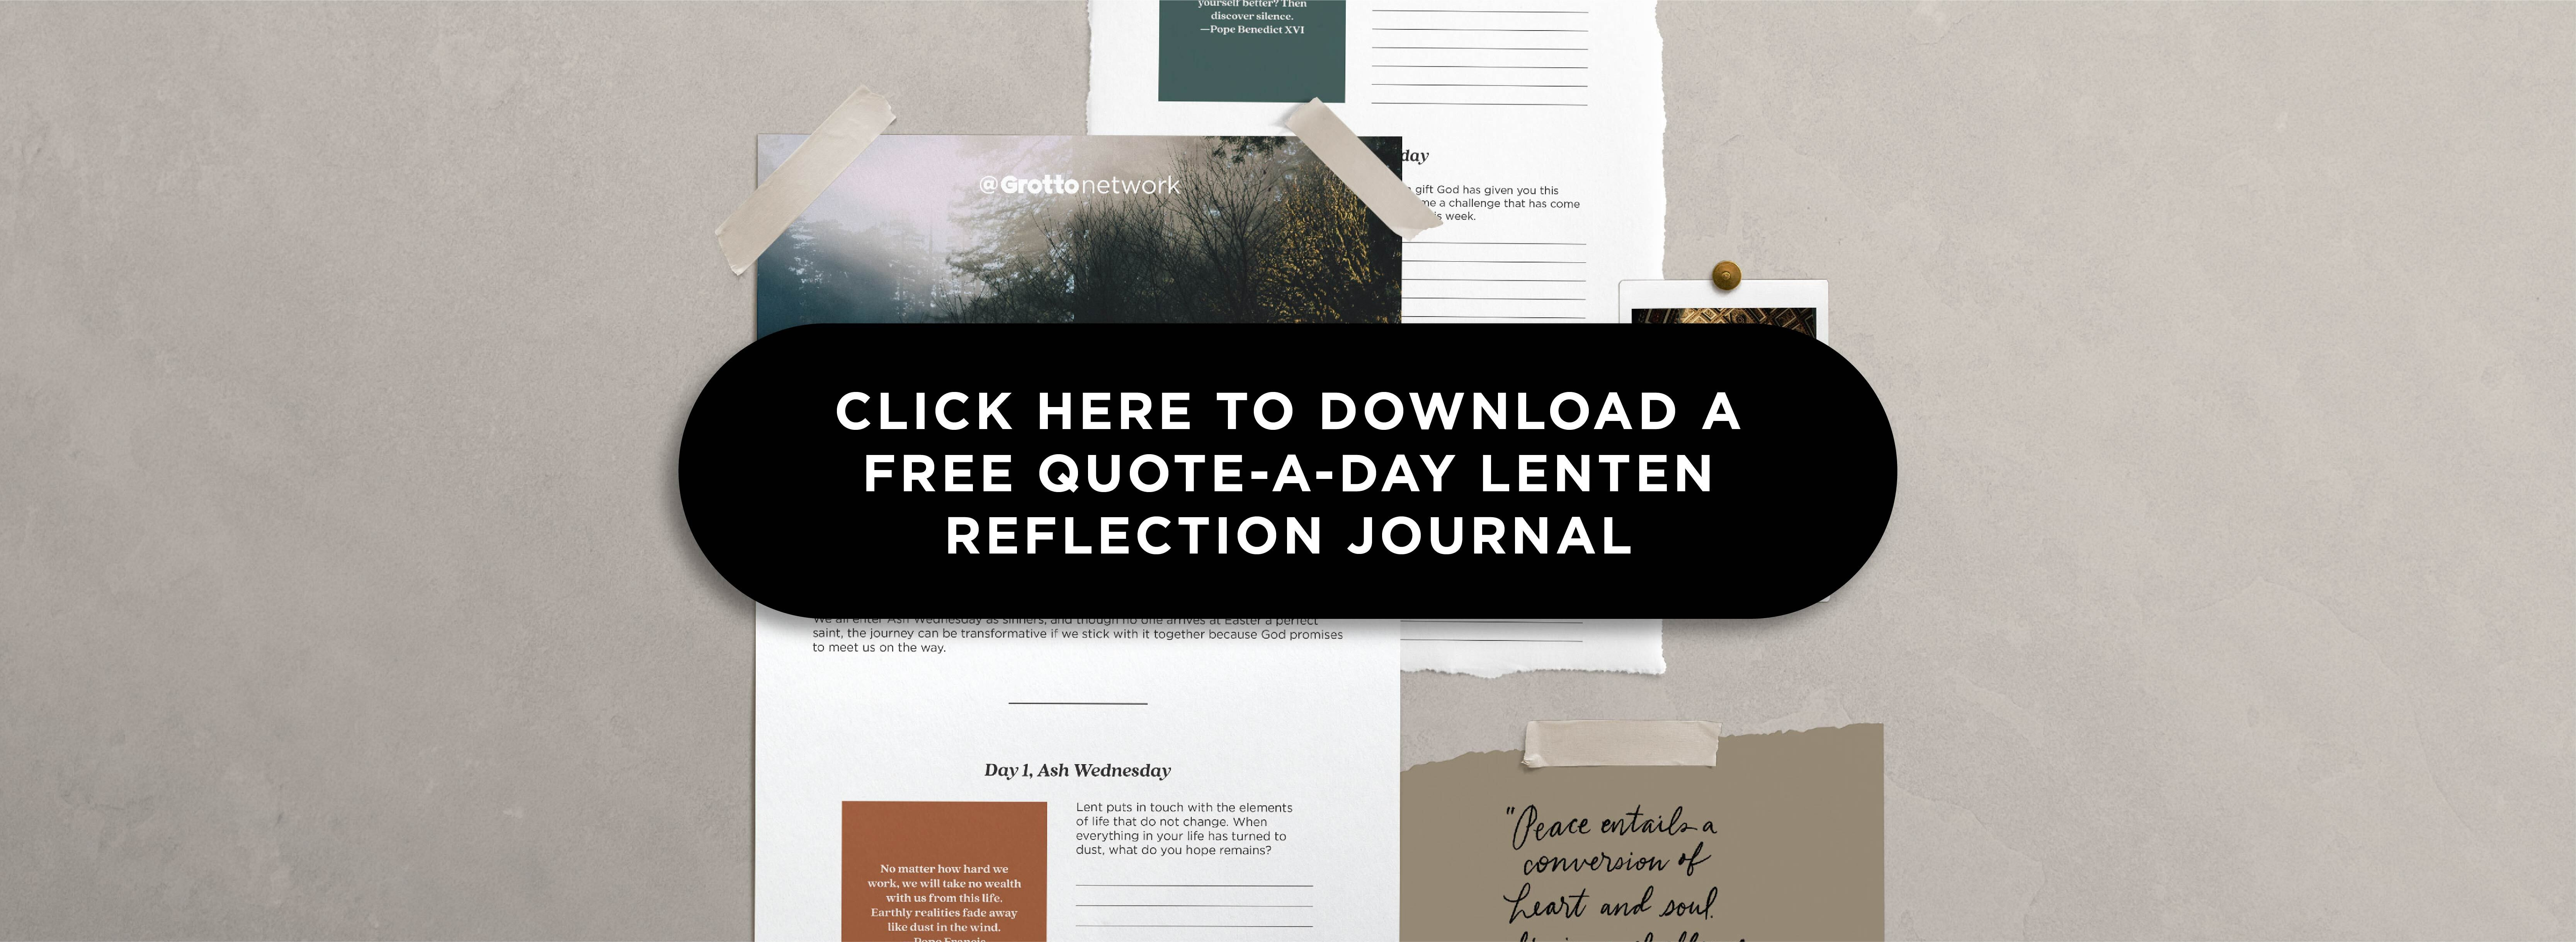 Click here to download a free quote-a-day lenten reflection journal.